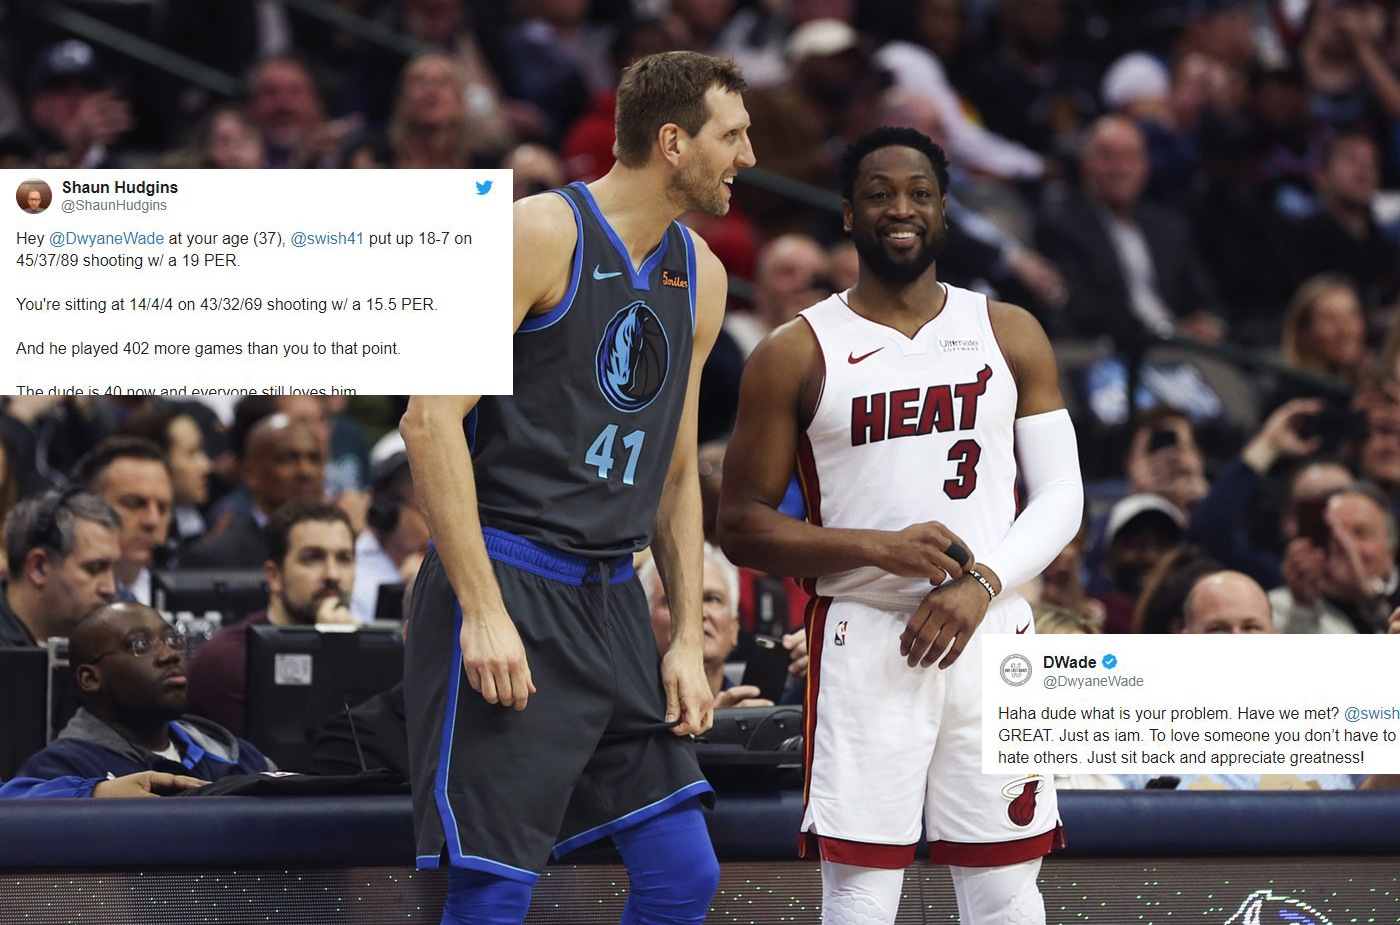 Dwyane Wade Gets Emotional in Speech Before Last NBA Game